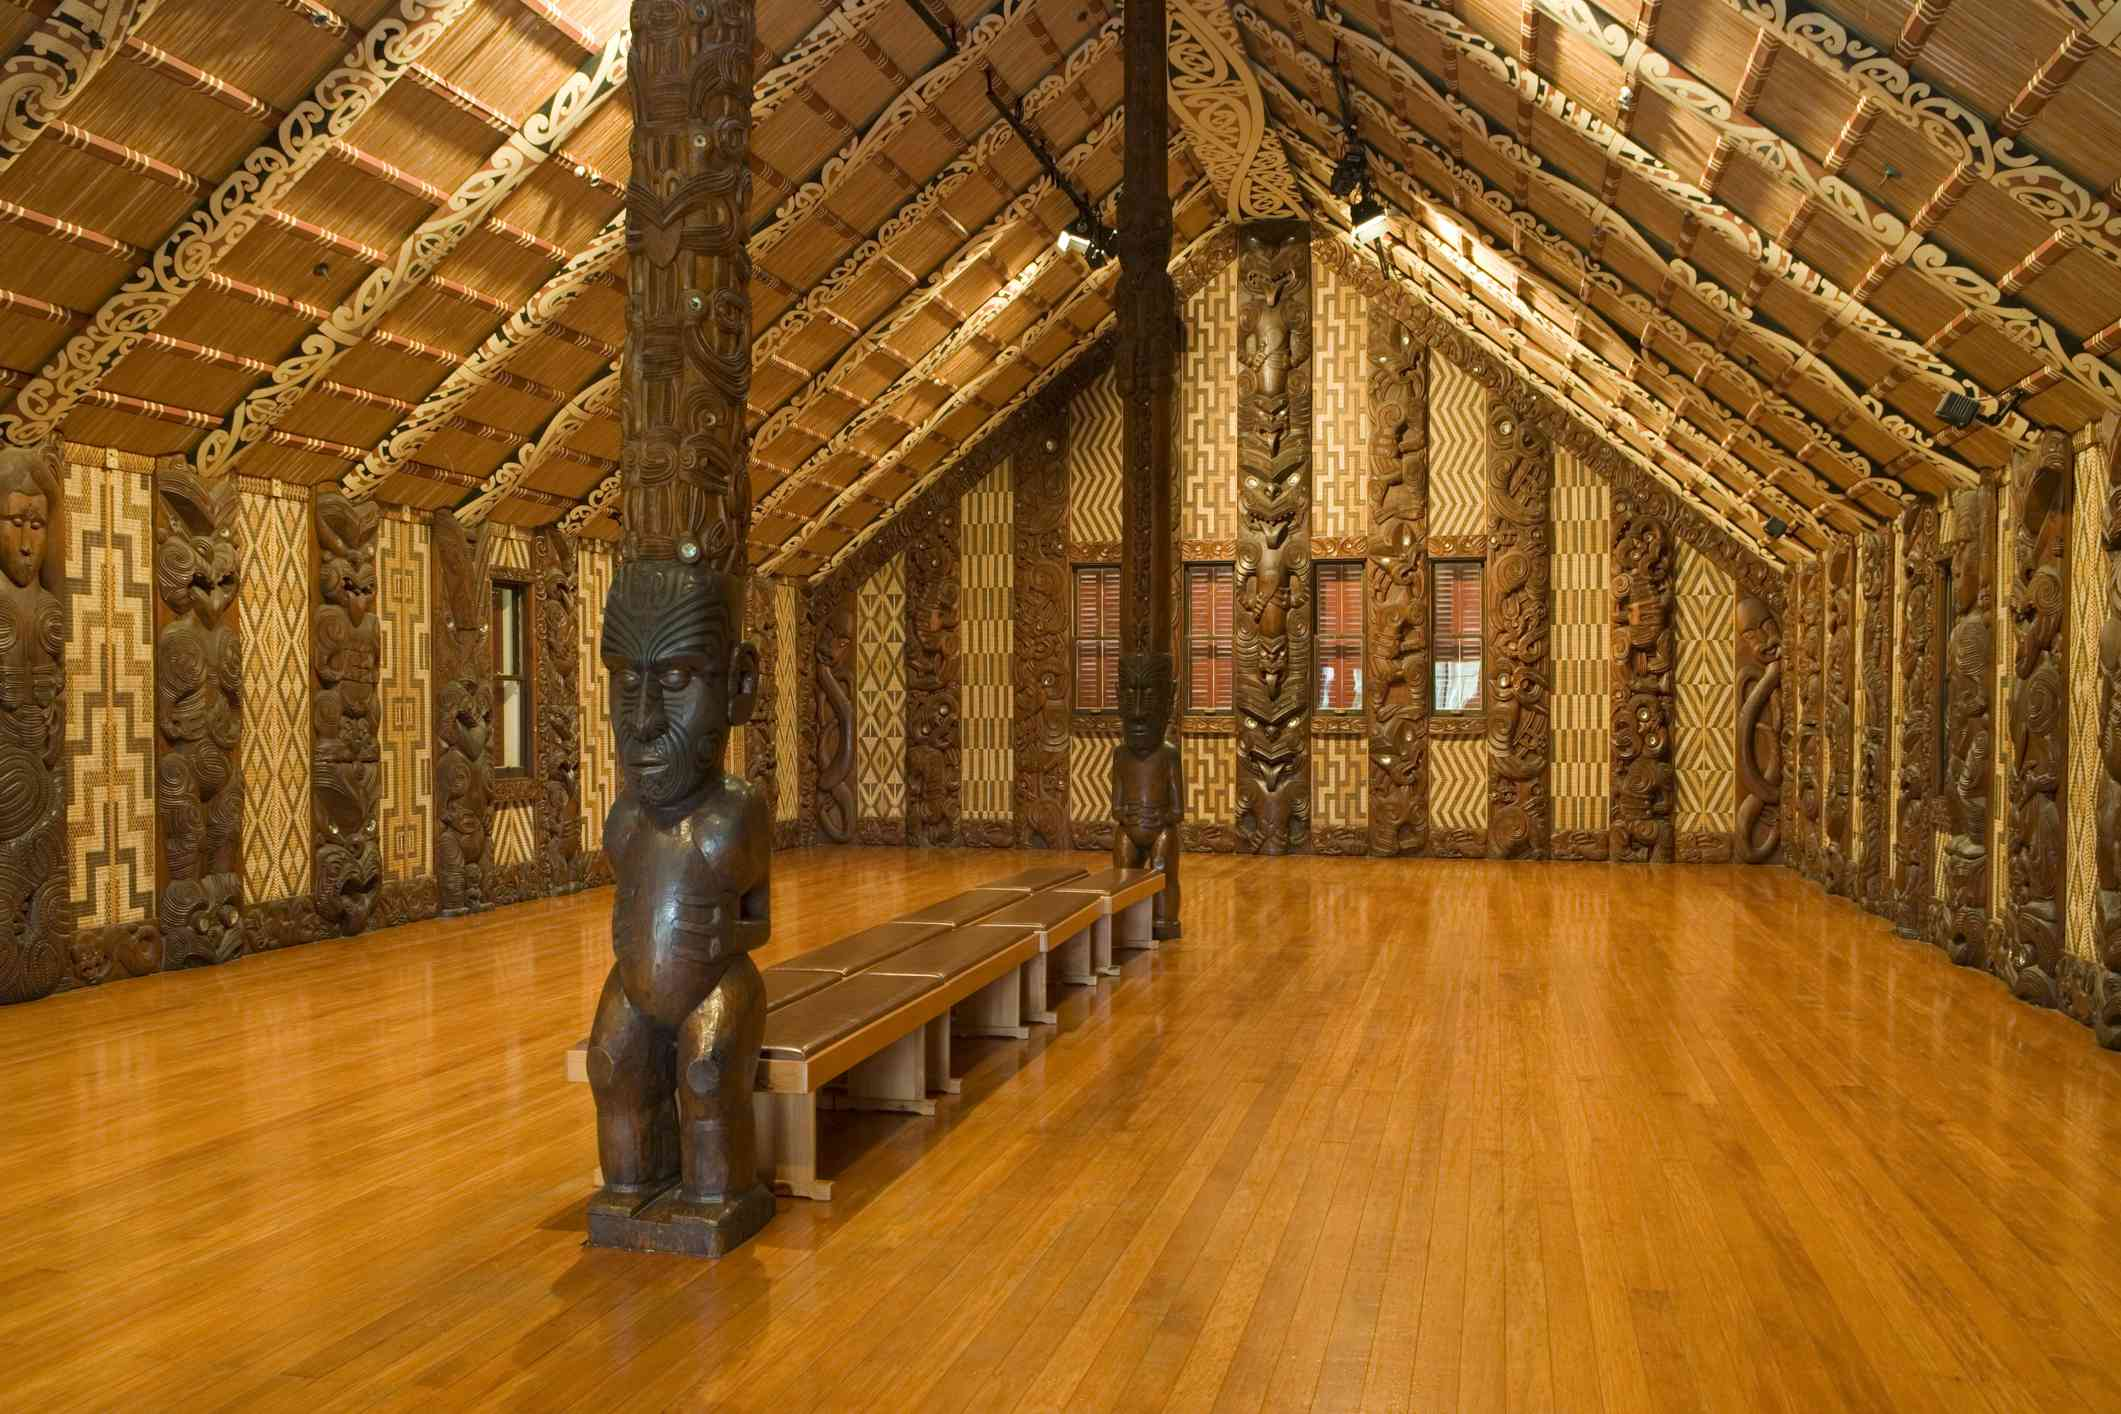 Carved Maori meeting house with decorative pillars